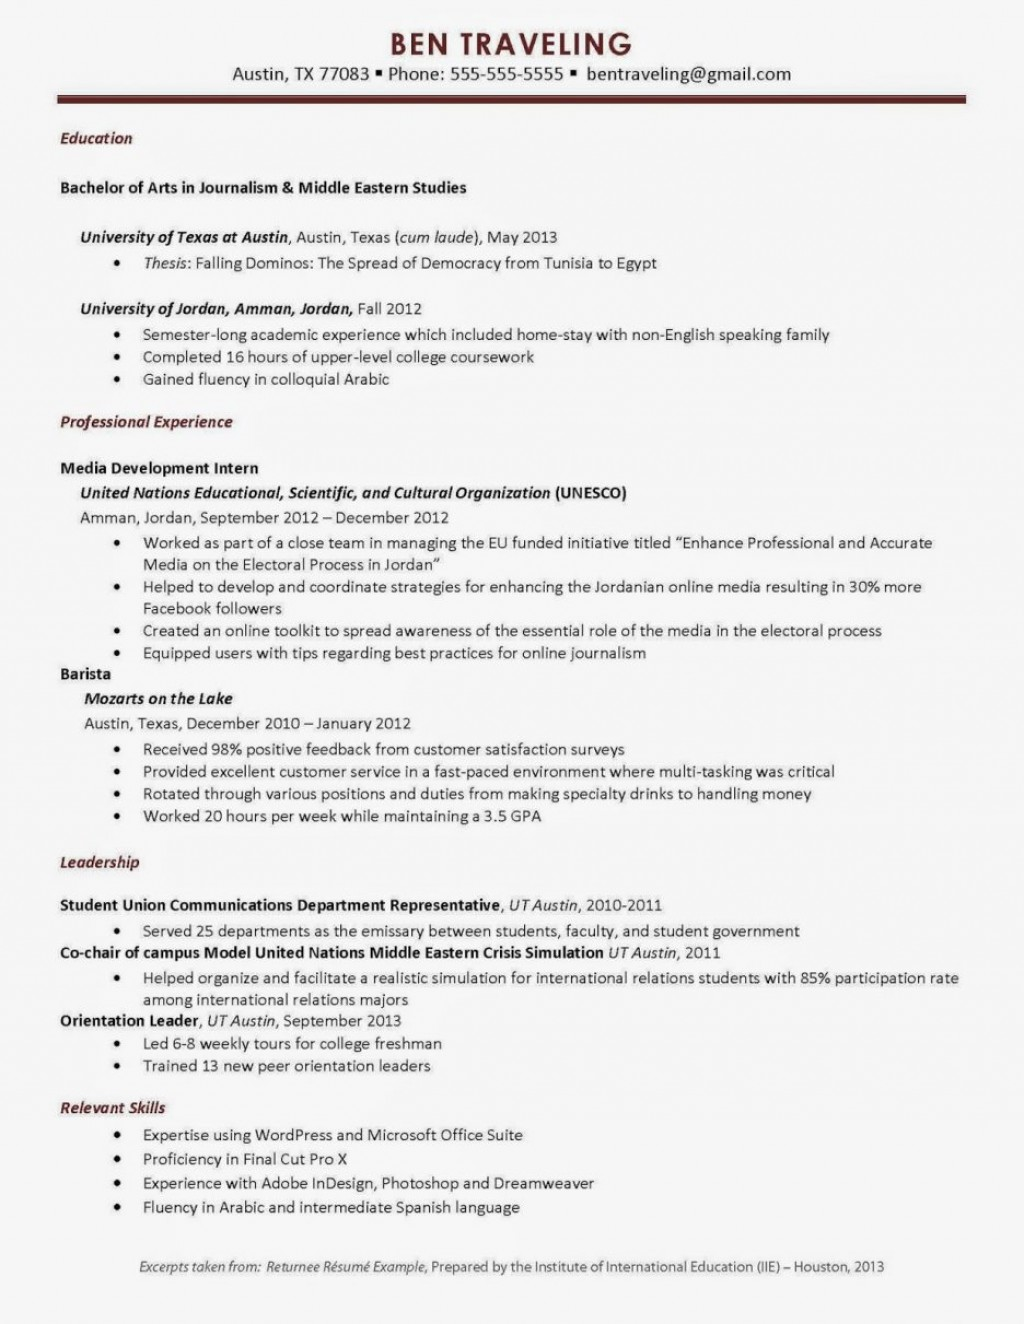 018 Study Abroad Essay Example Morethantravelworkshop Resume Personal Sample Scholarship Examples Why Do You Want To Application Top Samples I Large